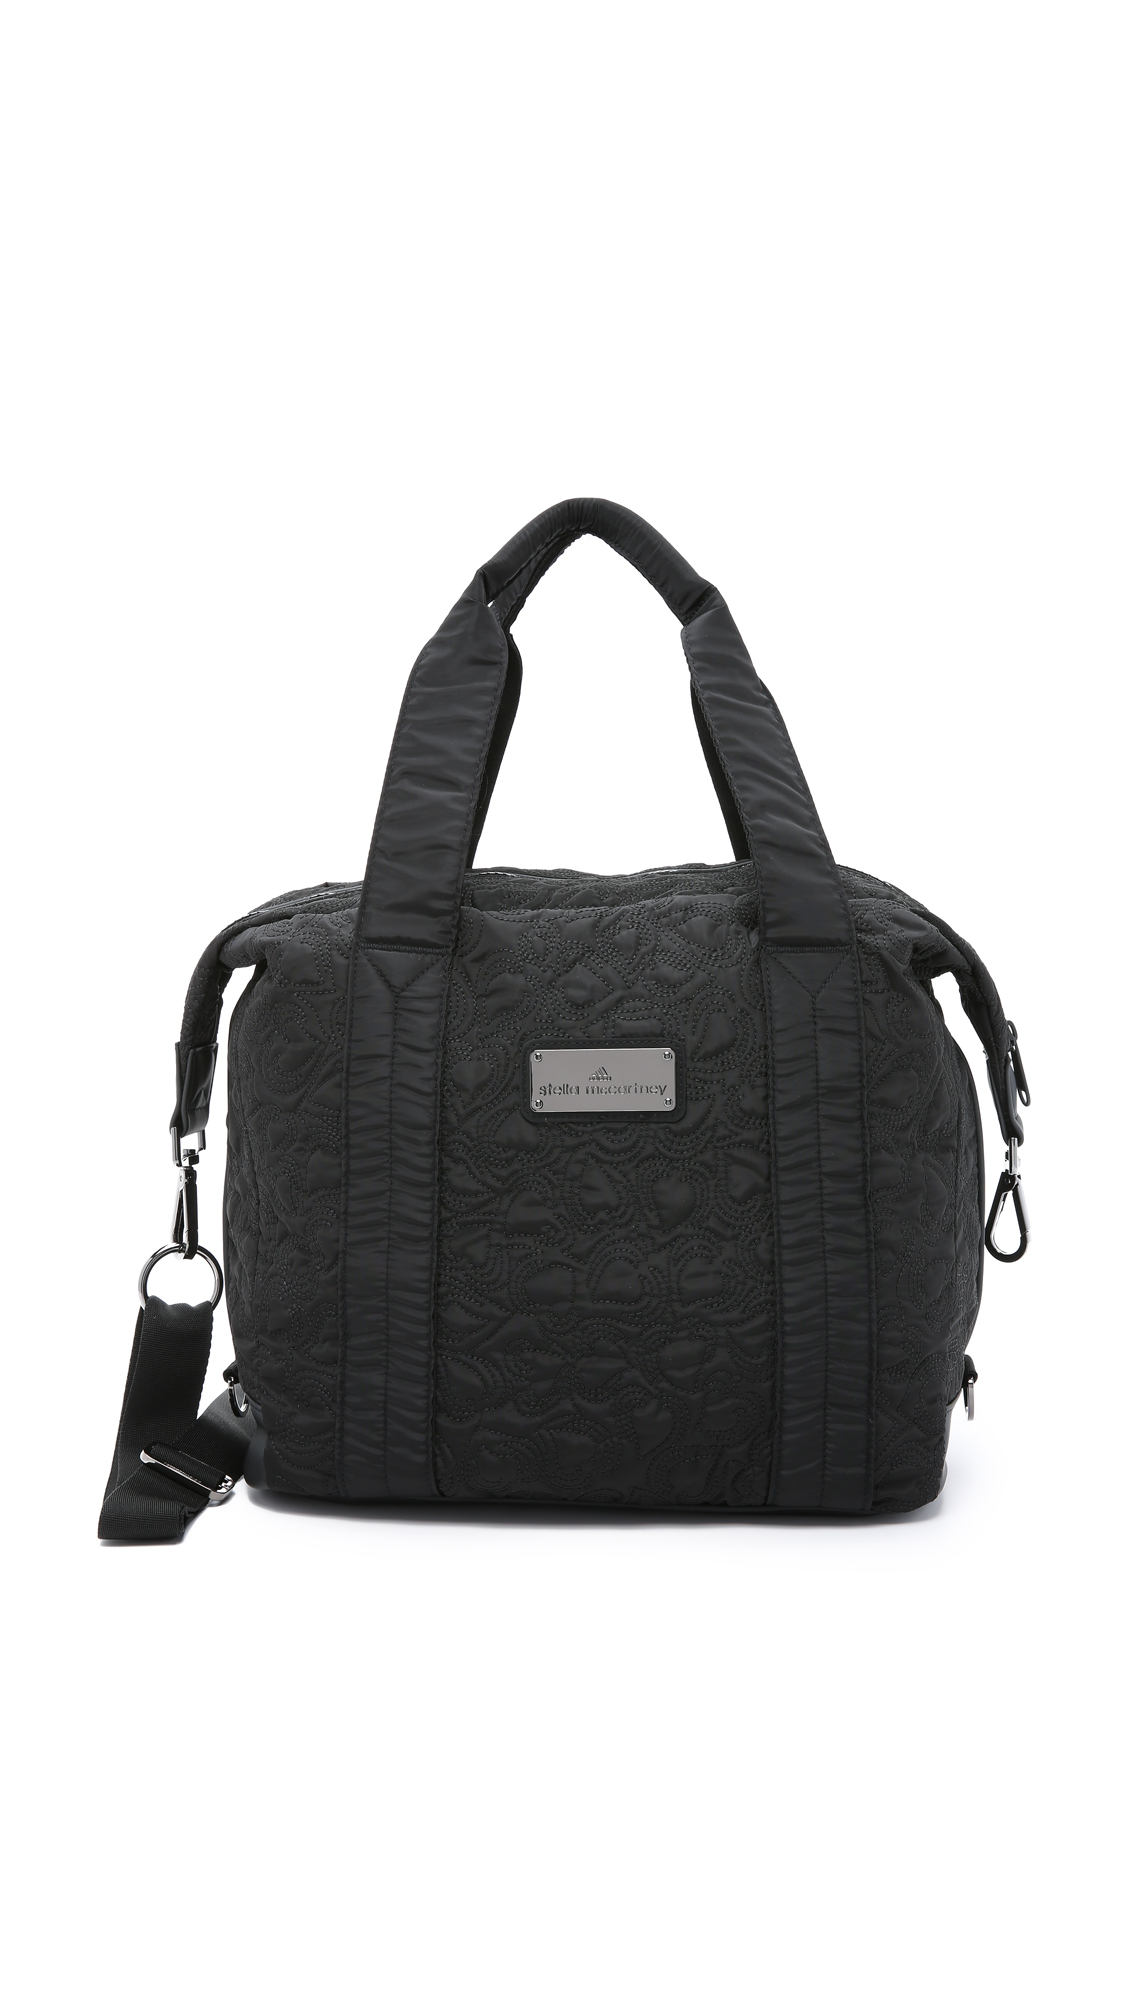 adidas By Stella McCartney Small Gym Bag - Black in Black - Lyst 1a43485f1bdb6